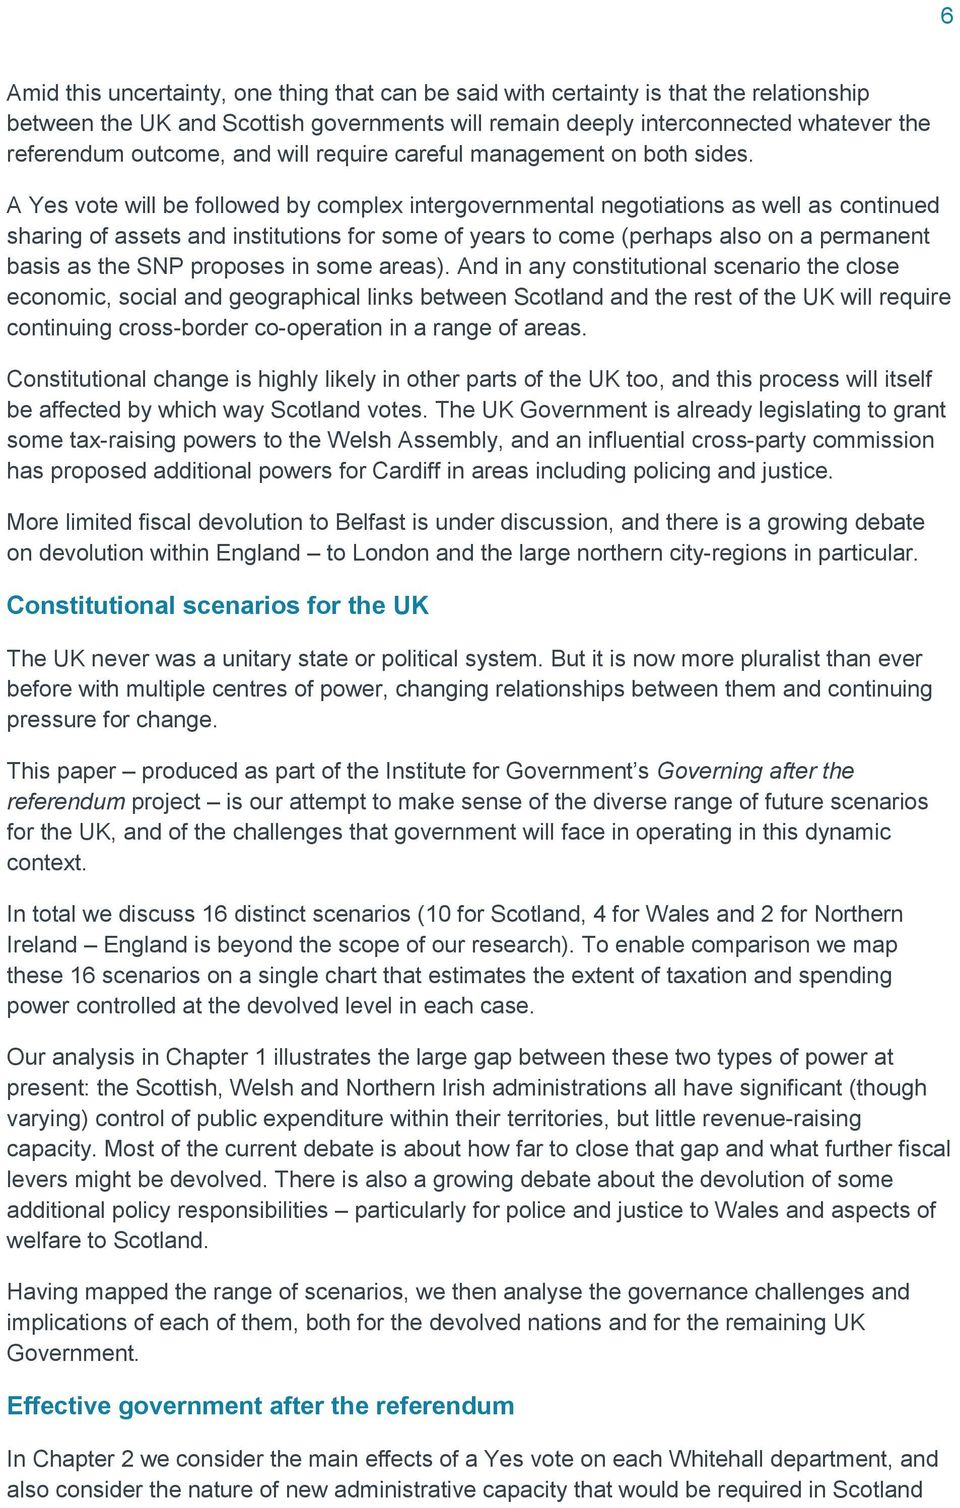 A Yes vote will be followed by complex intergovernmental negotiations as well as continued sharing of assets and institutions for some of years to come (perhaps also on a permanent basis as the SNP